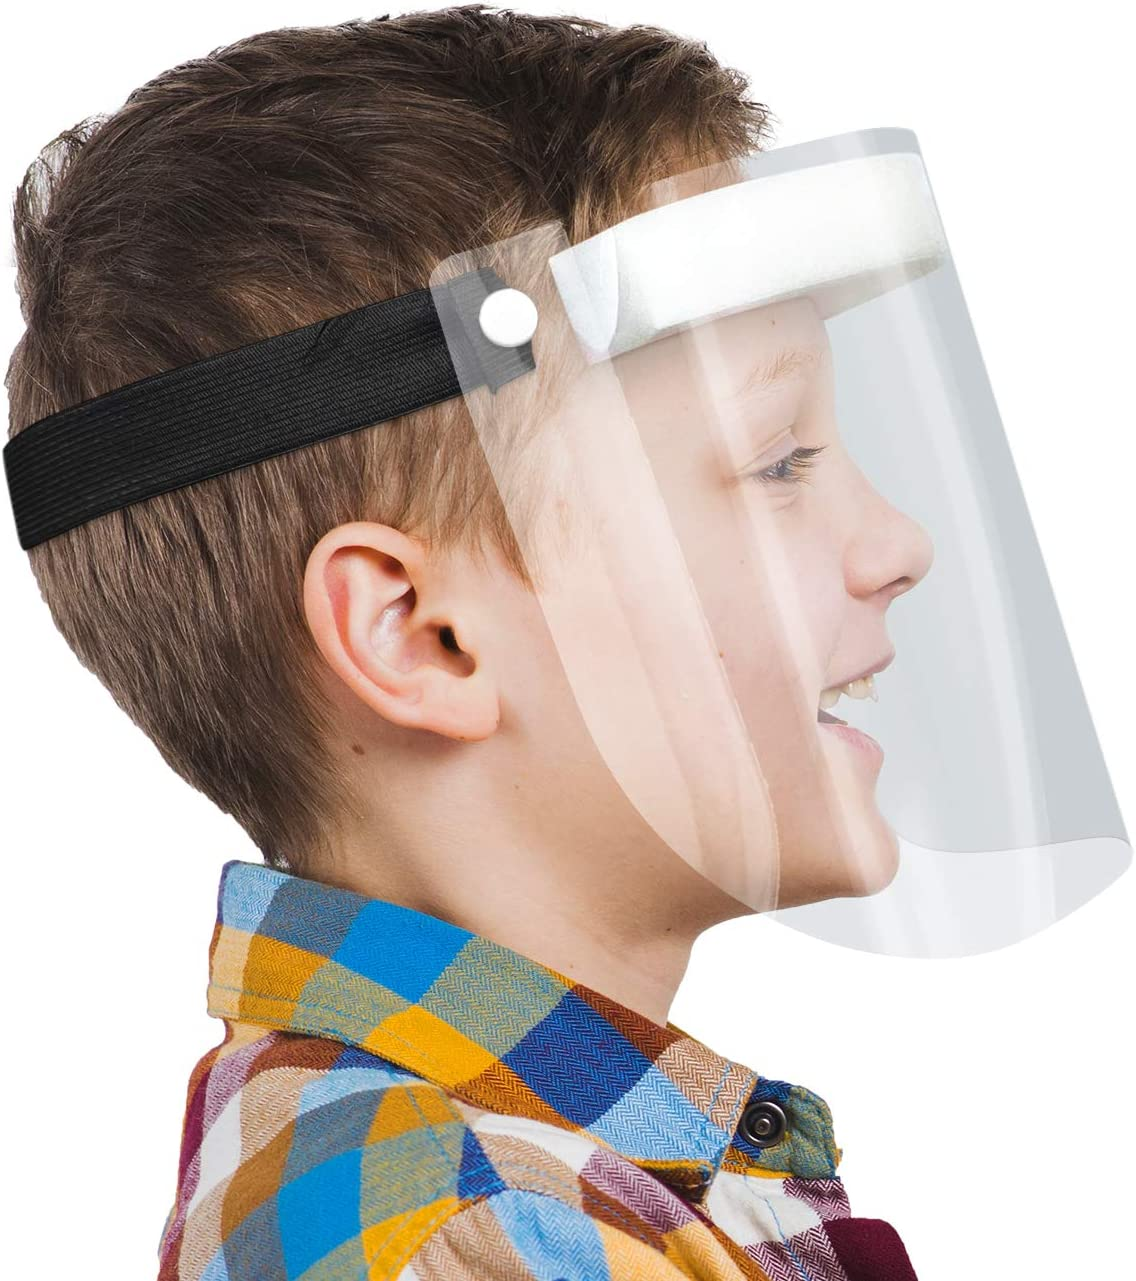 Made in Germany HARD 1x visor face protection Face Shield with Anti Fog Black certified Visor for kids